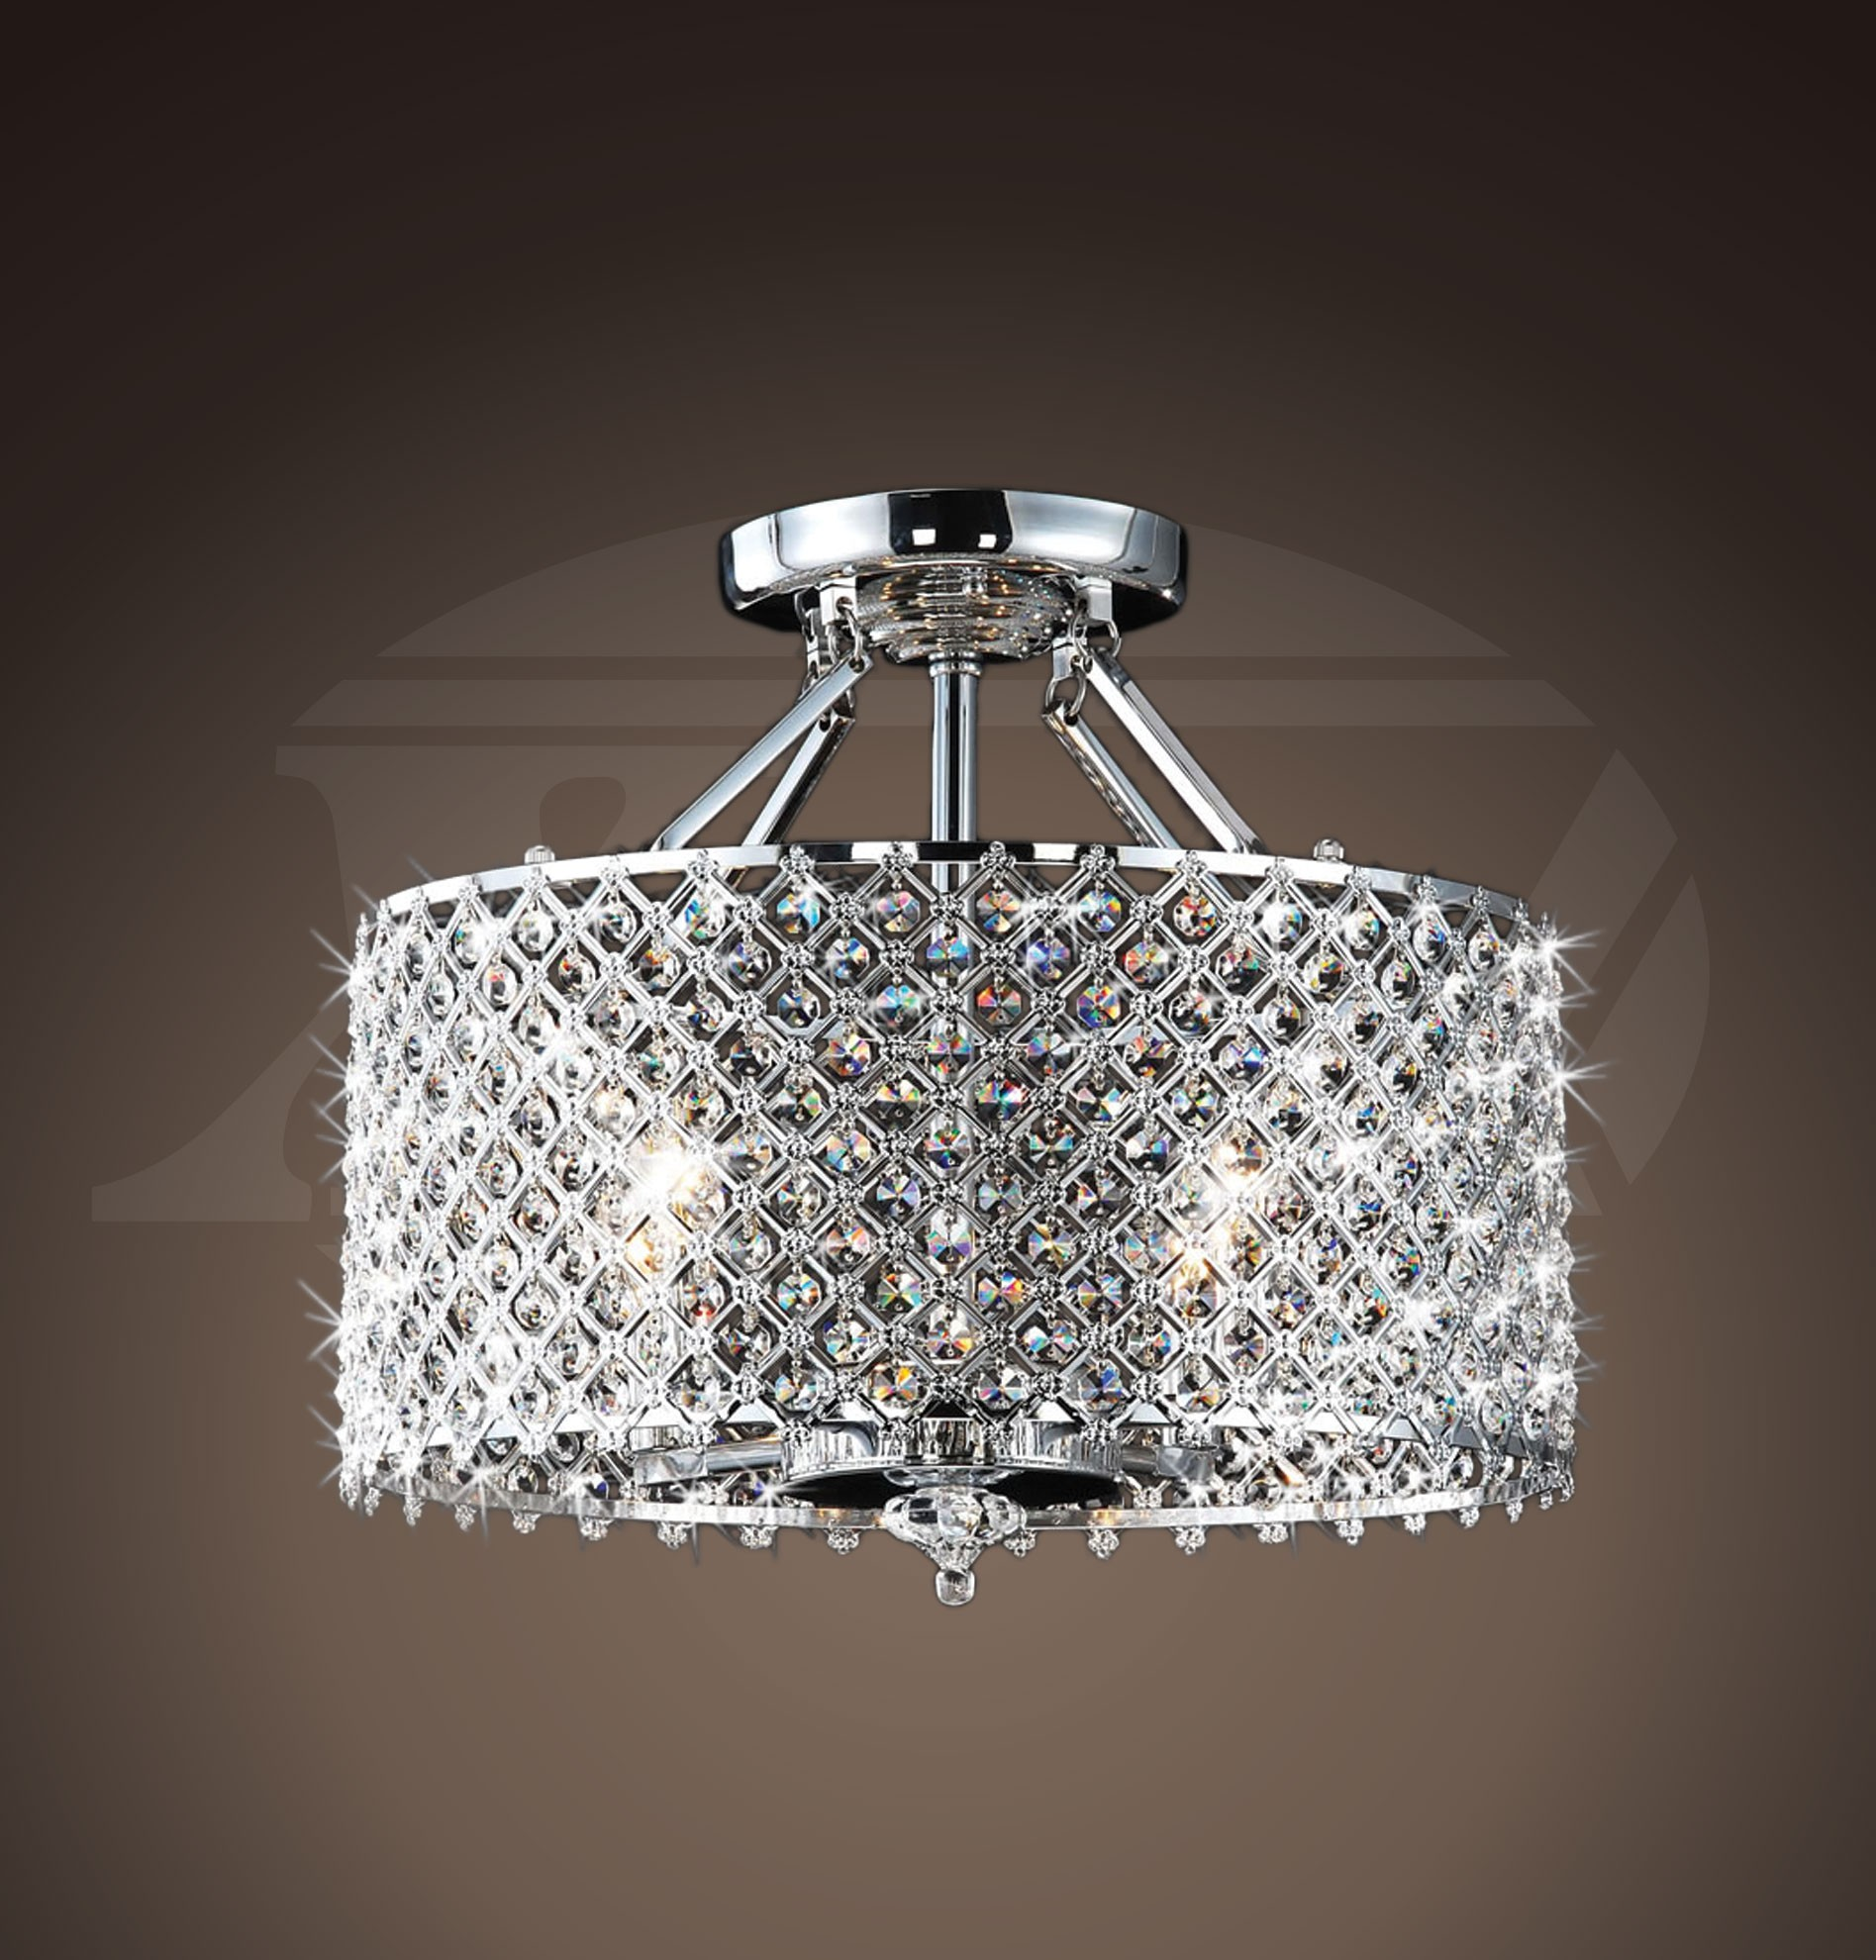 helina chrome and crystal light round ceiling flush mount chandelier(hx. helina chrome and crystal light round ceiling flush mount